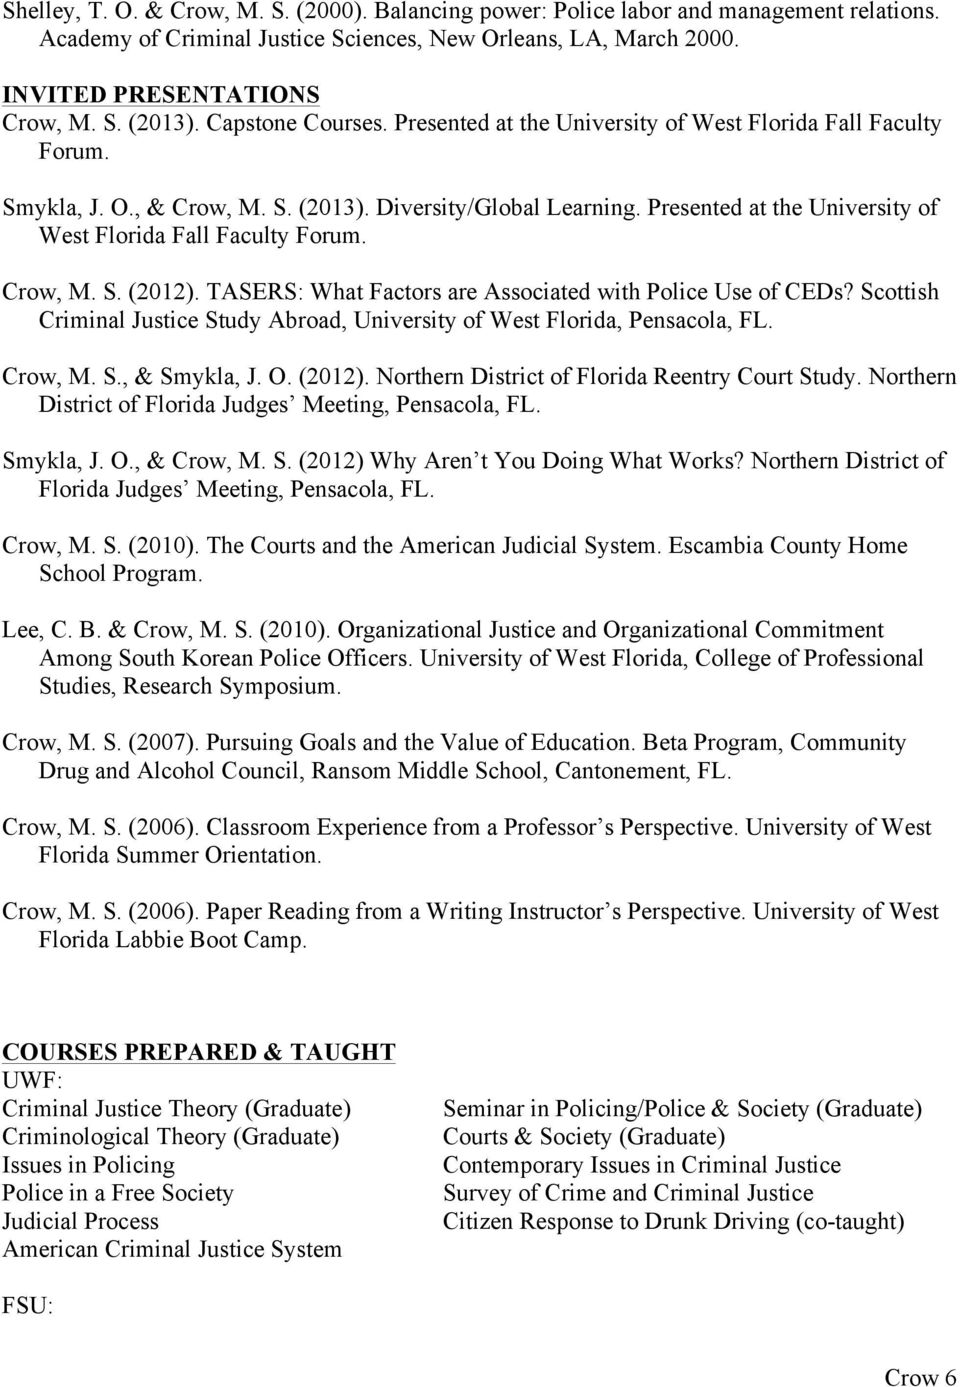 Presented at the University of West Florida Fall Faculty Forum. Crow, M. S. (2012). TASERS: What Factors are Associated with Police Use of CEDs?